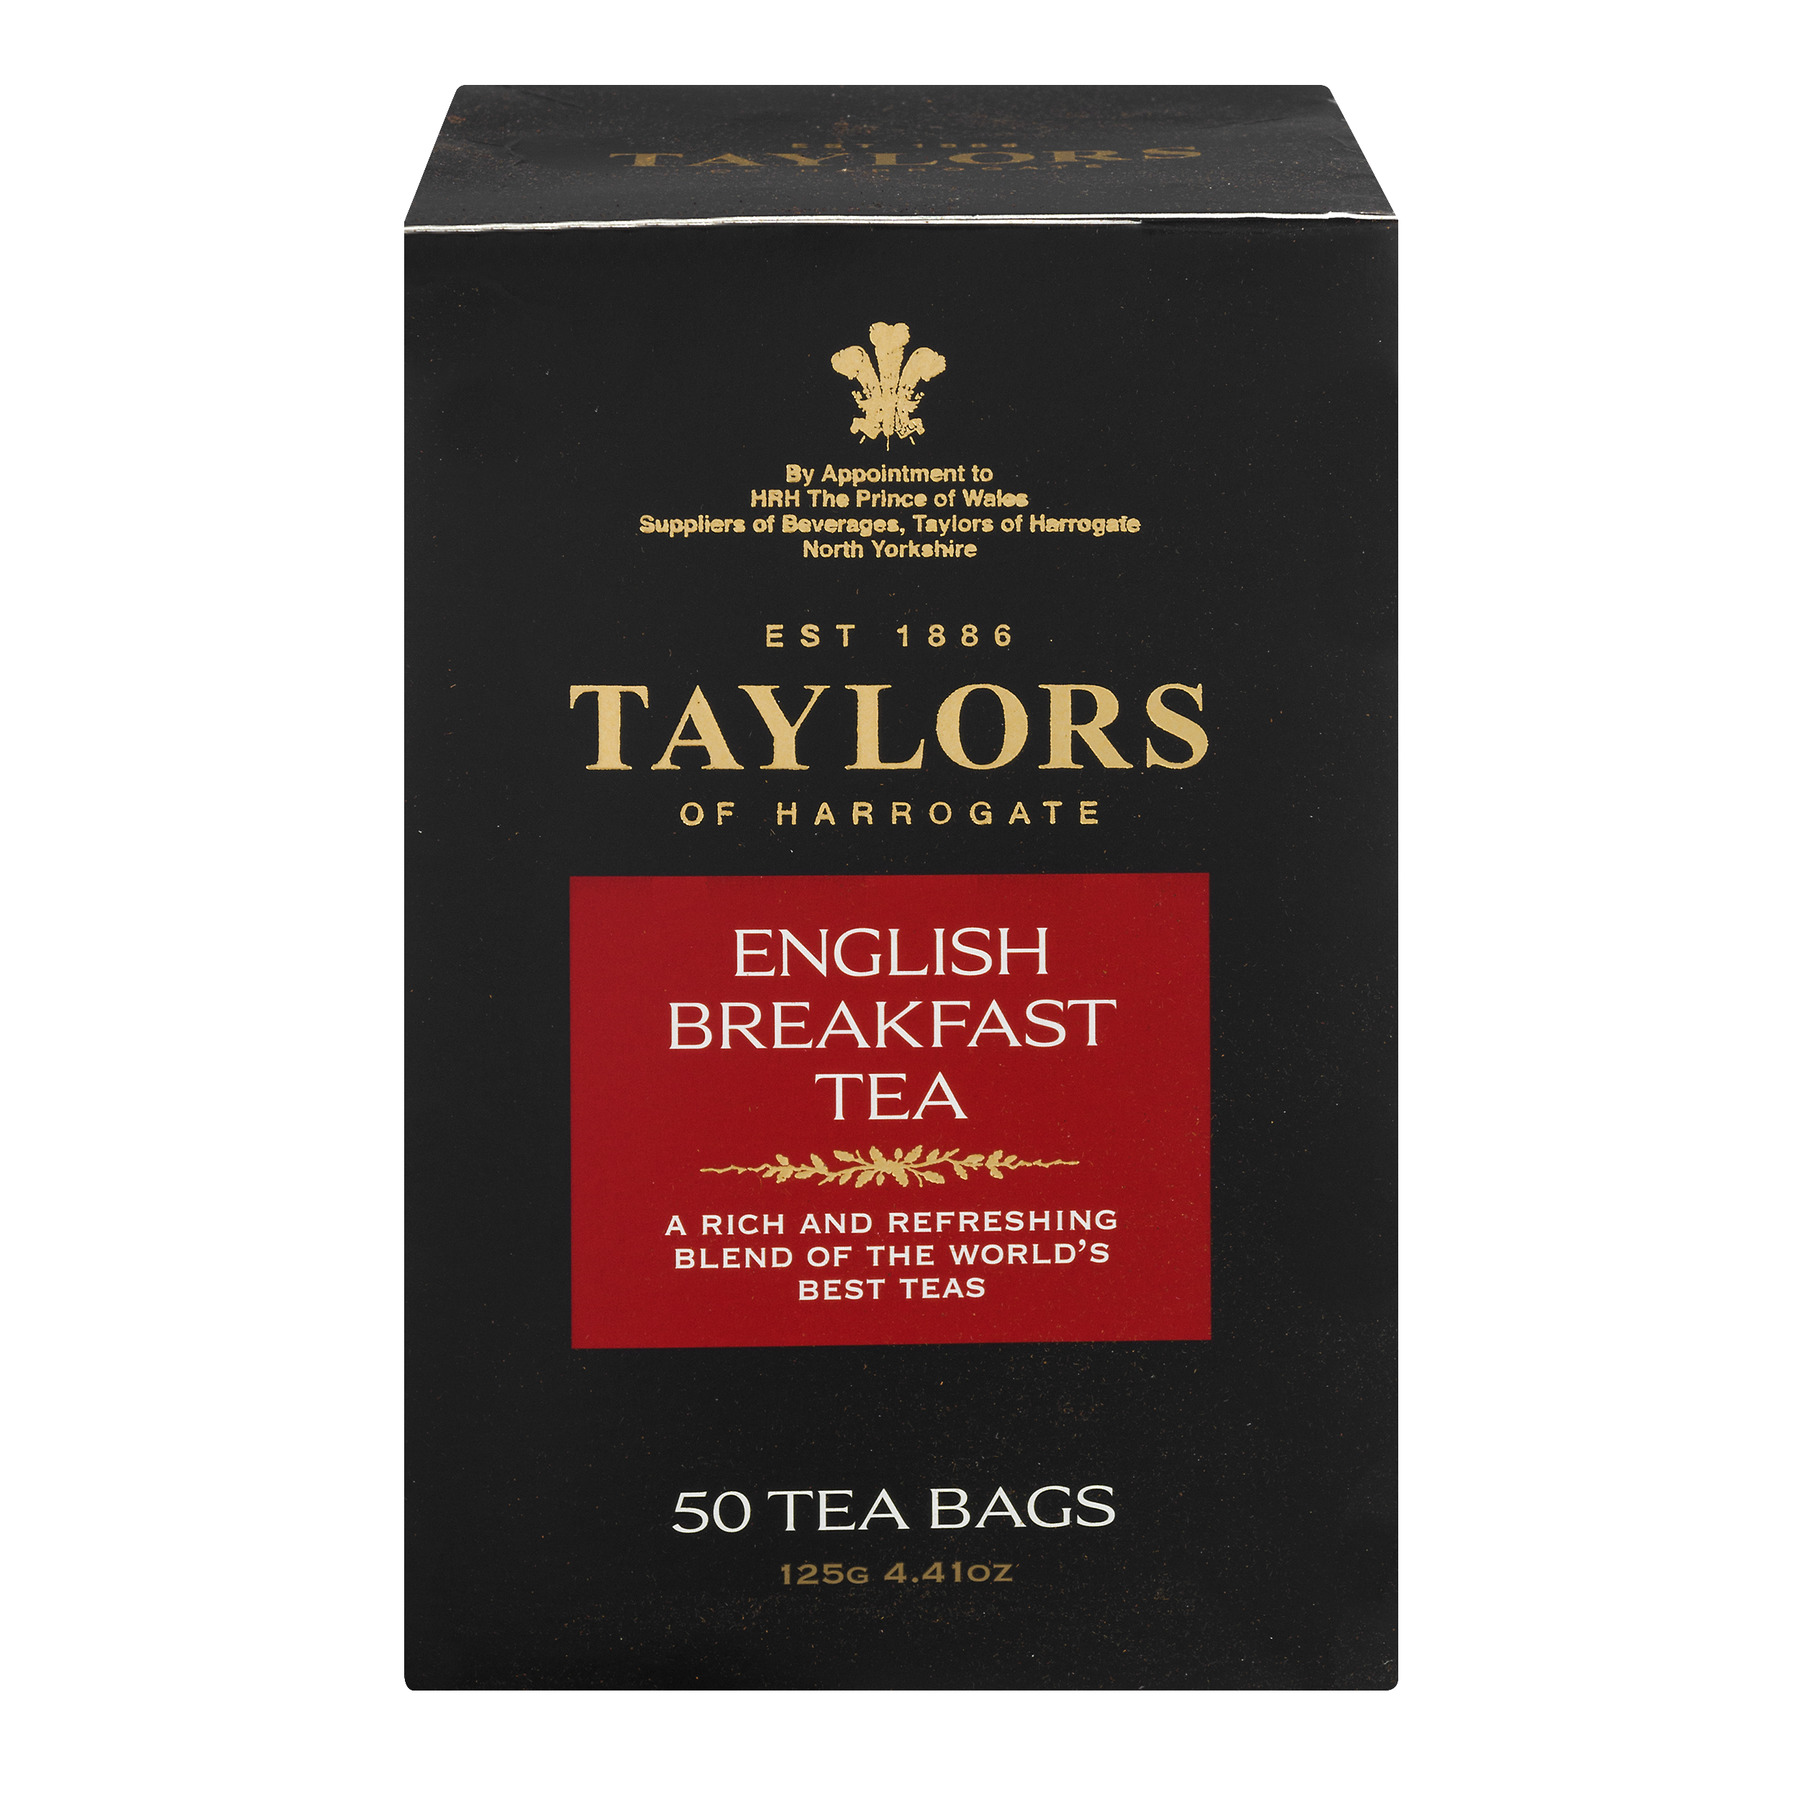 Taylors Of Harrogate English Breakfast Tea, 50.0 CT